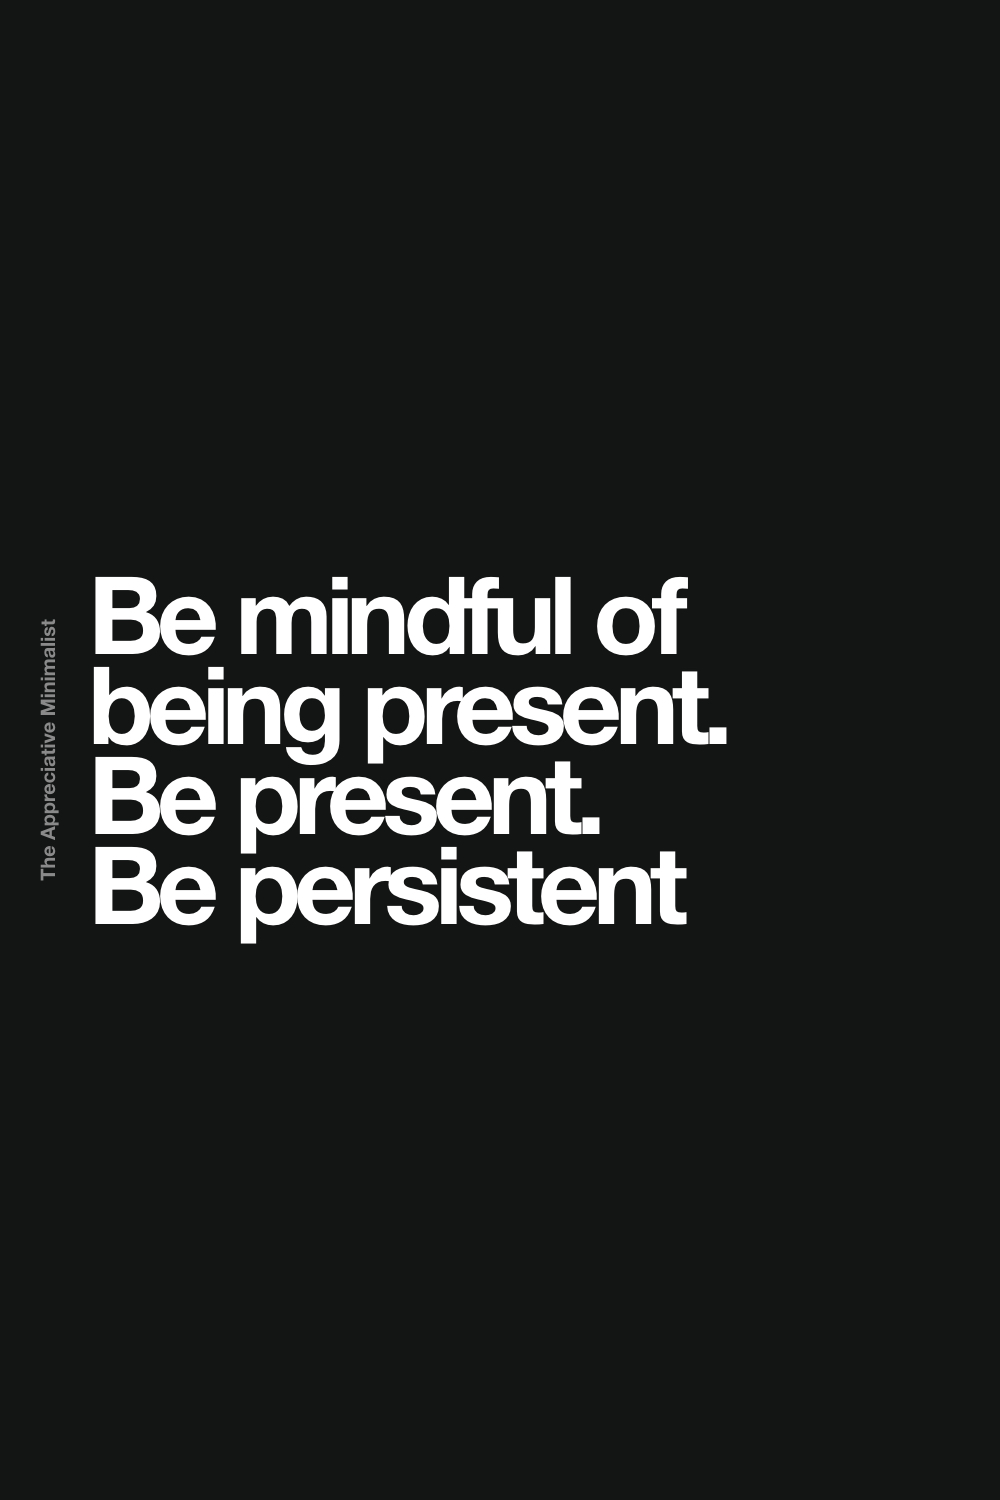 Be mindful of being present. Be present. Be persistent